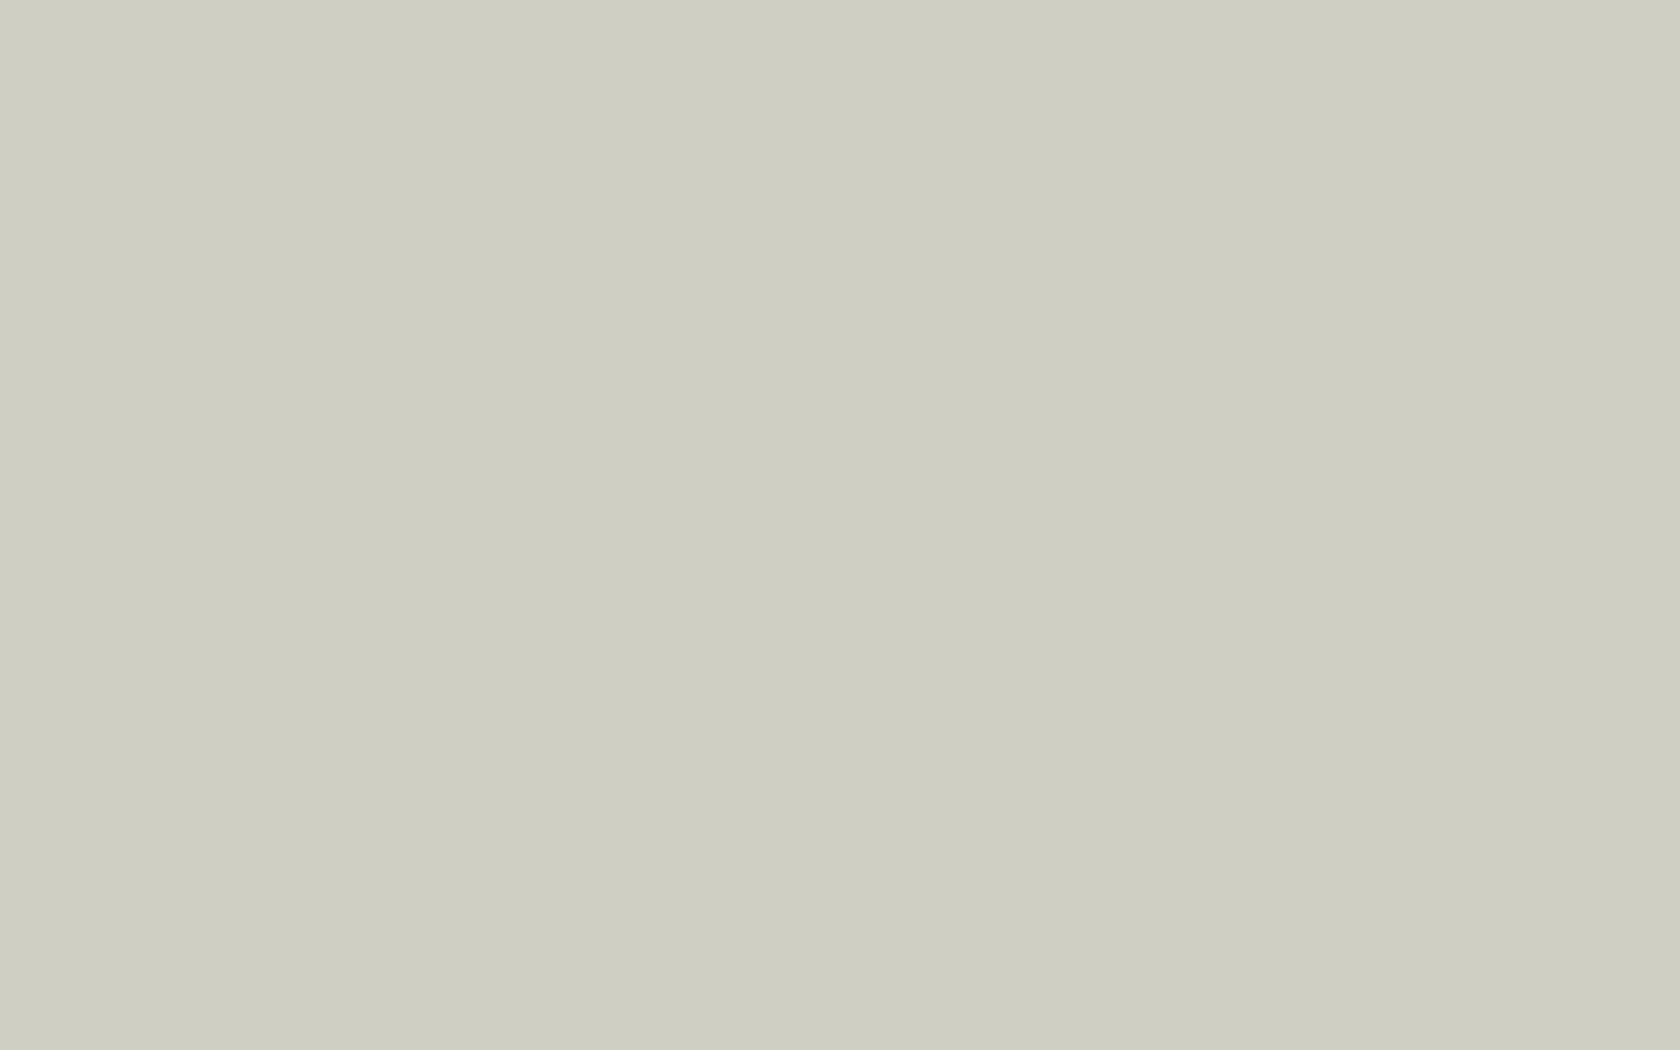 1680x1050 Pastel Gray Solid Color Background